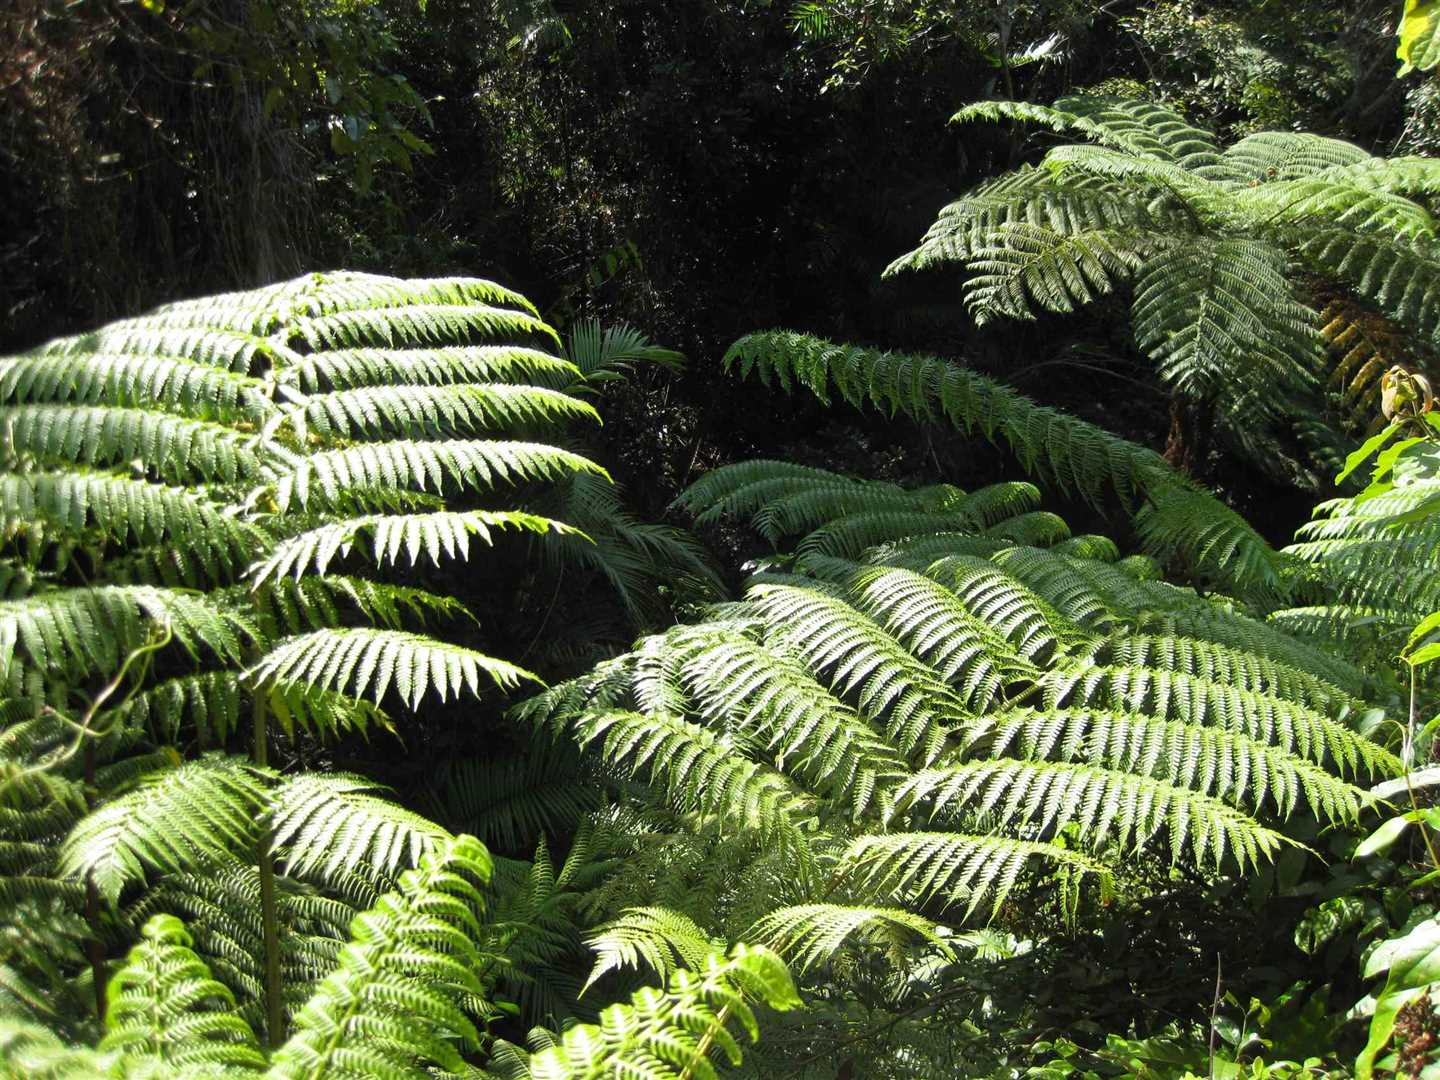 View of some tree ferns in the property